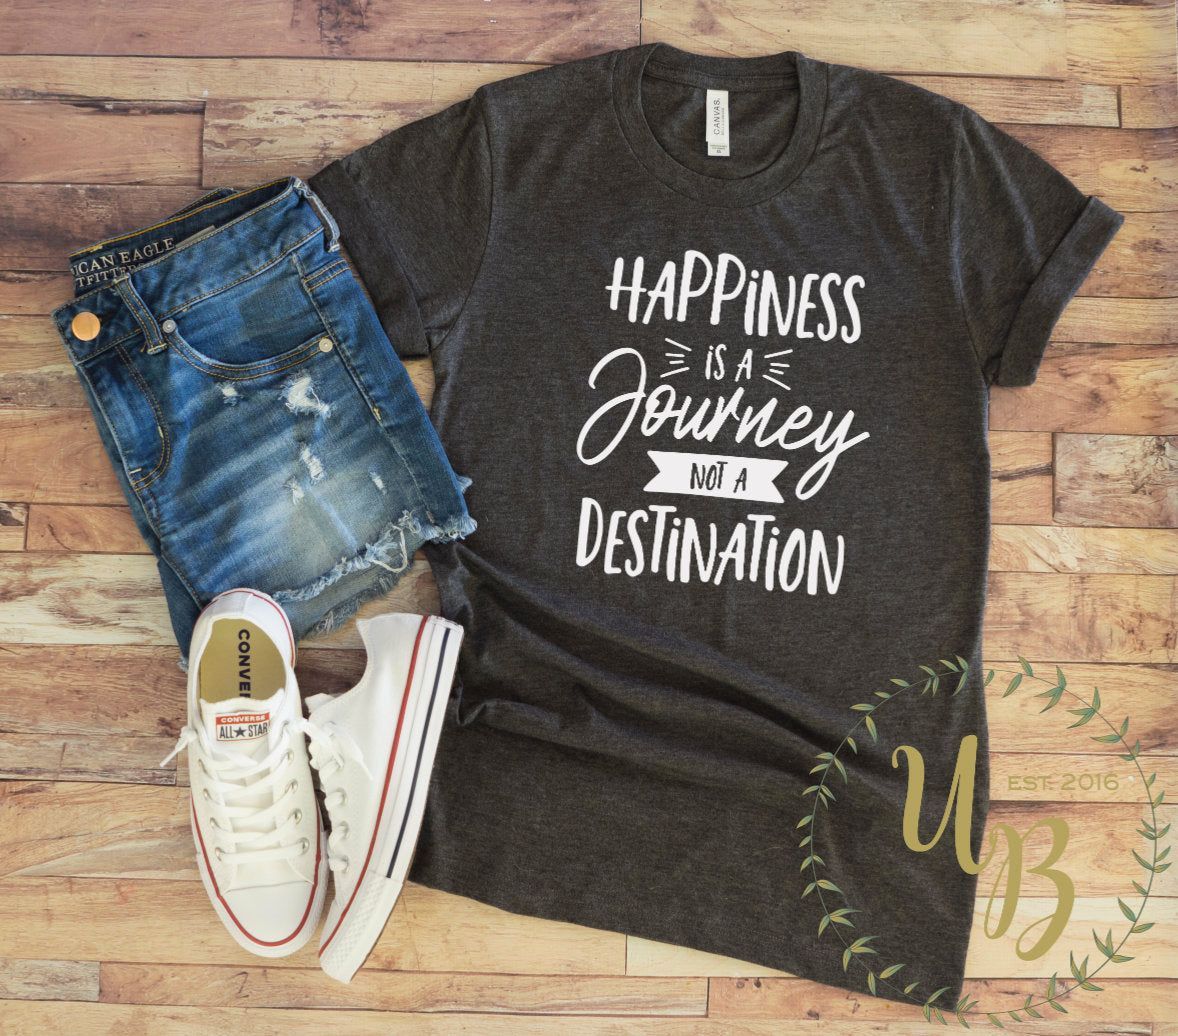 Happiness is a Journey Not A Destination Unisex T-Shirt - Women's Shirts - Be Happy T-shirt - Happiness Shirt - Inspirational